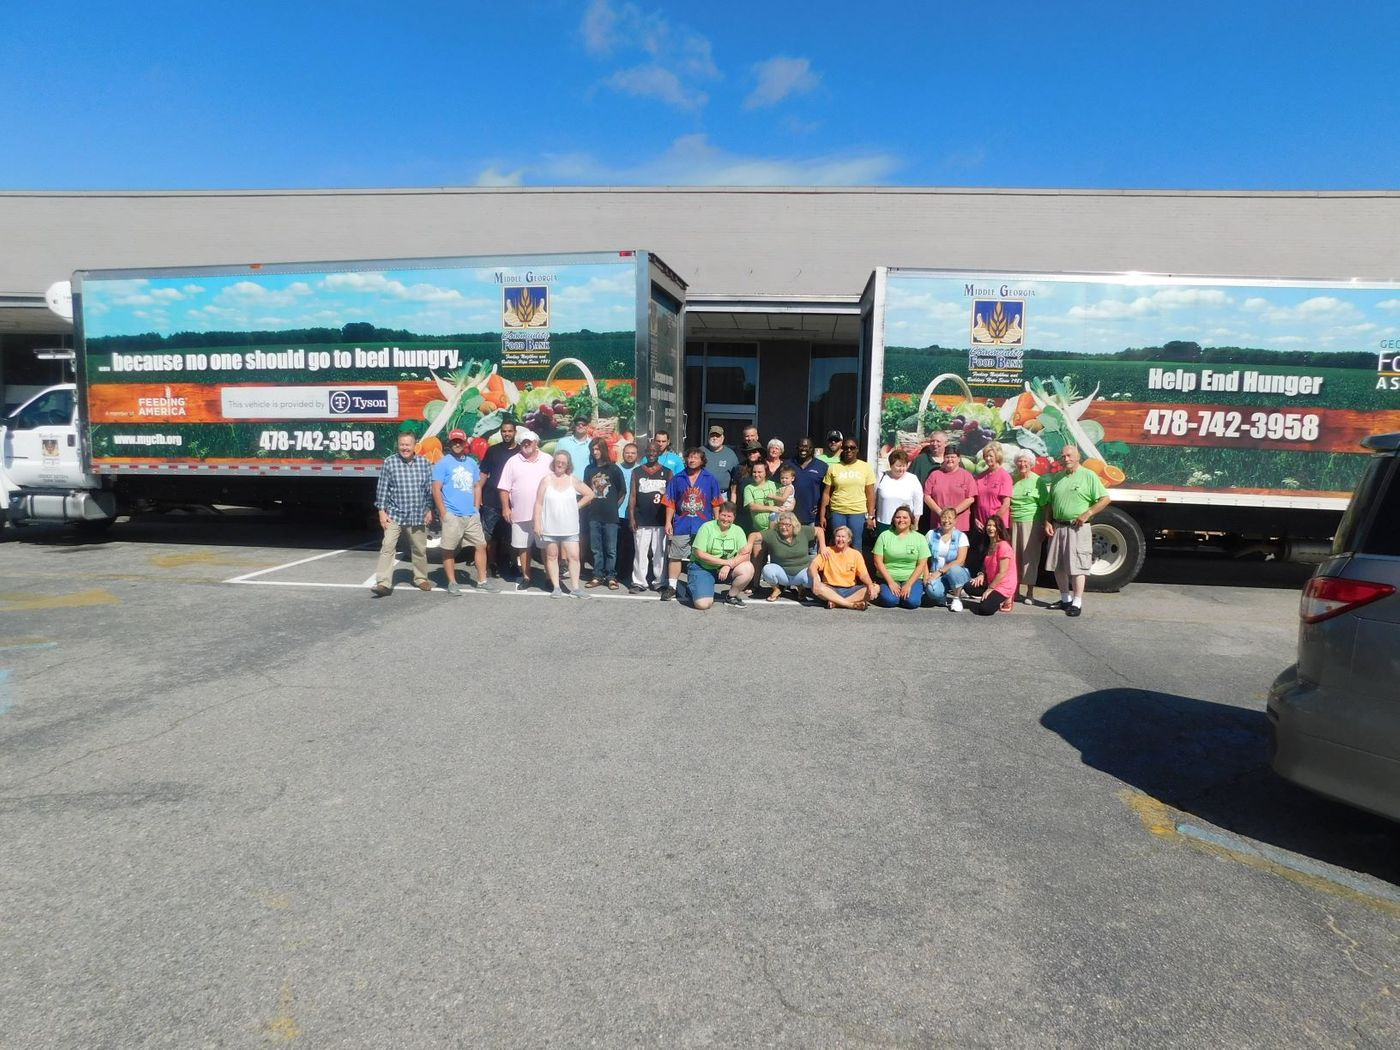 Bleckley County Mobile Pantry 2.JPG